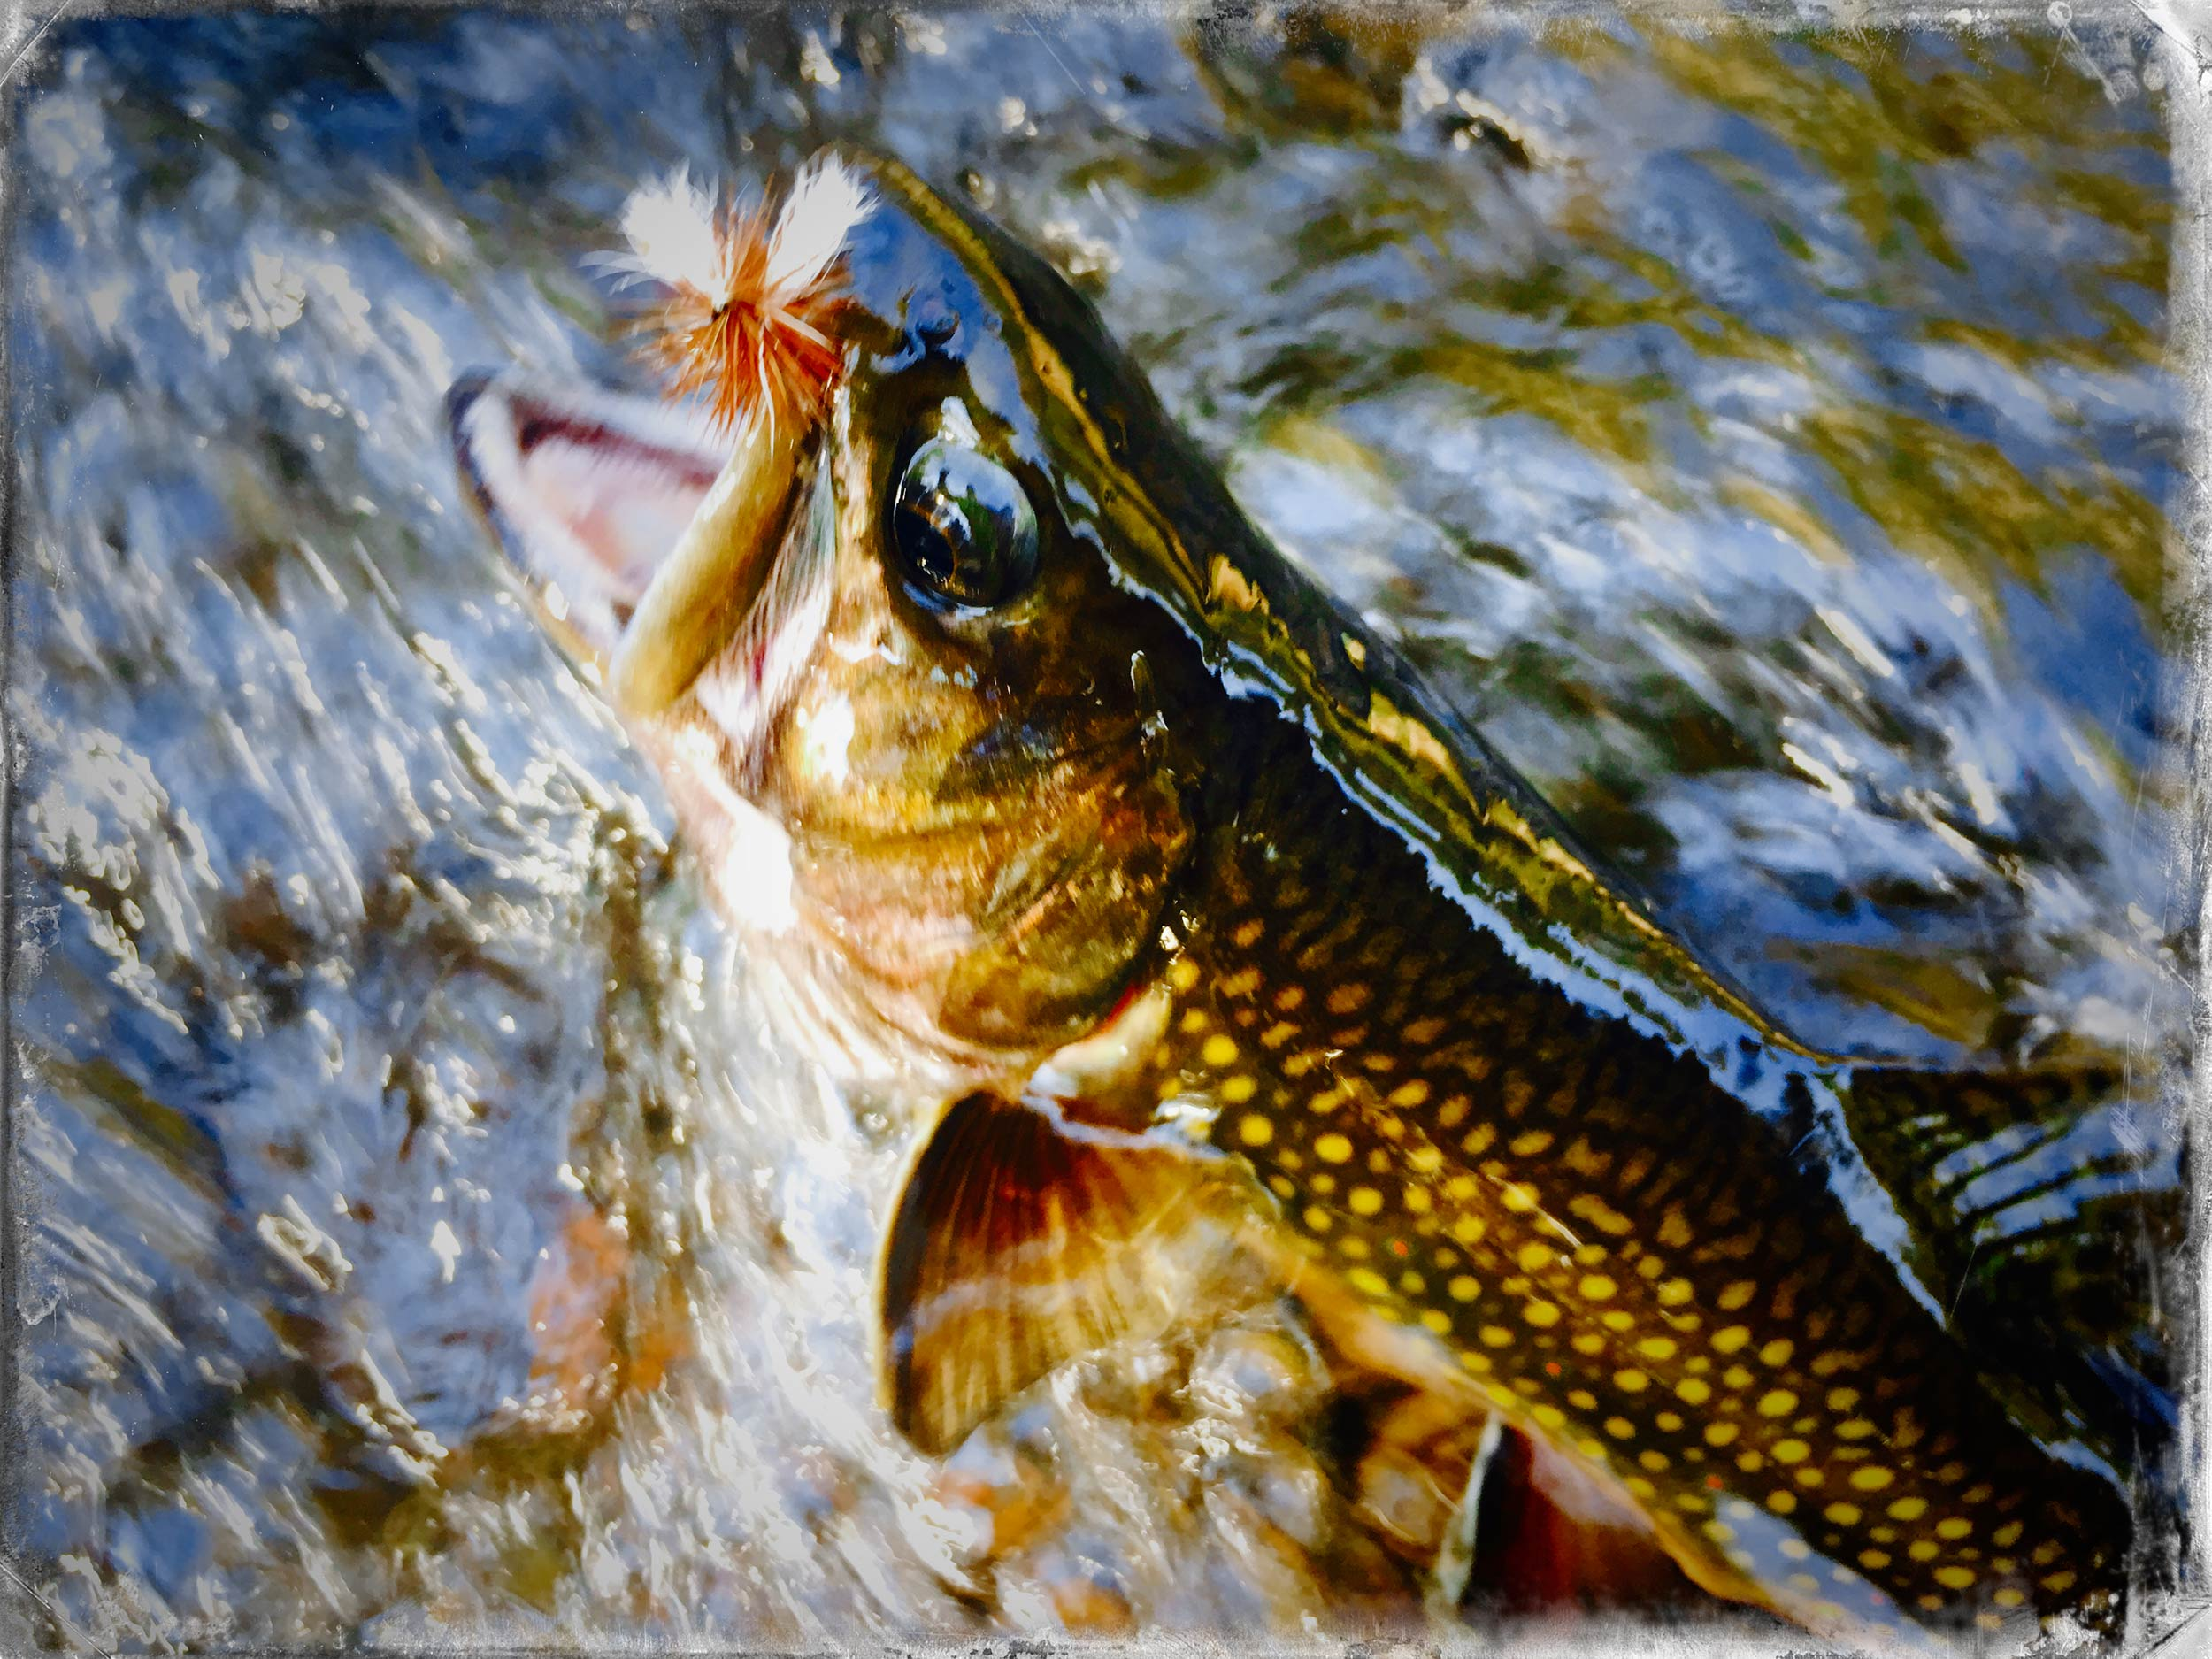 Brook Trout with a Dry Fly